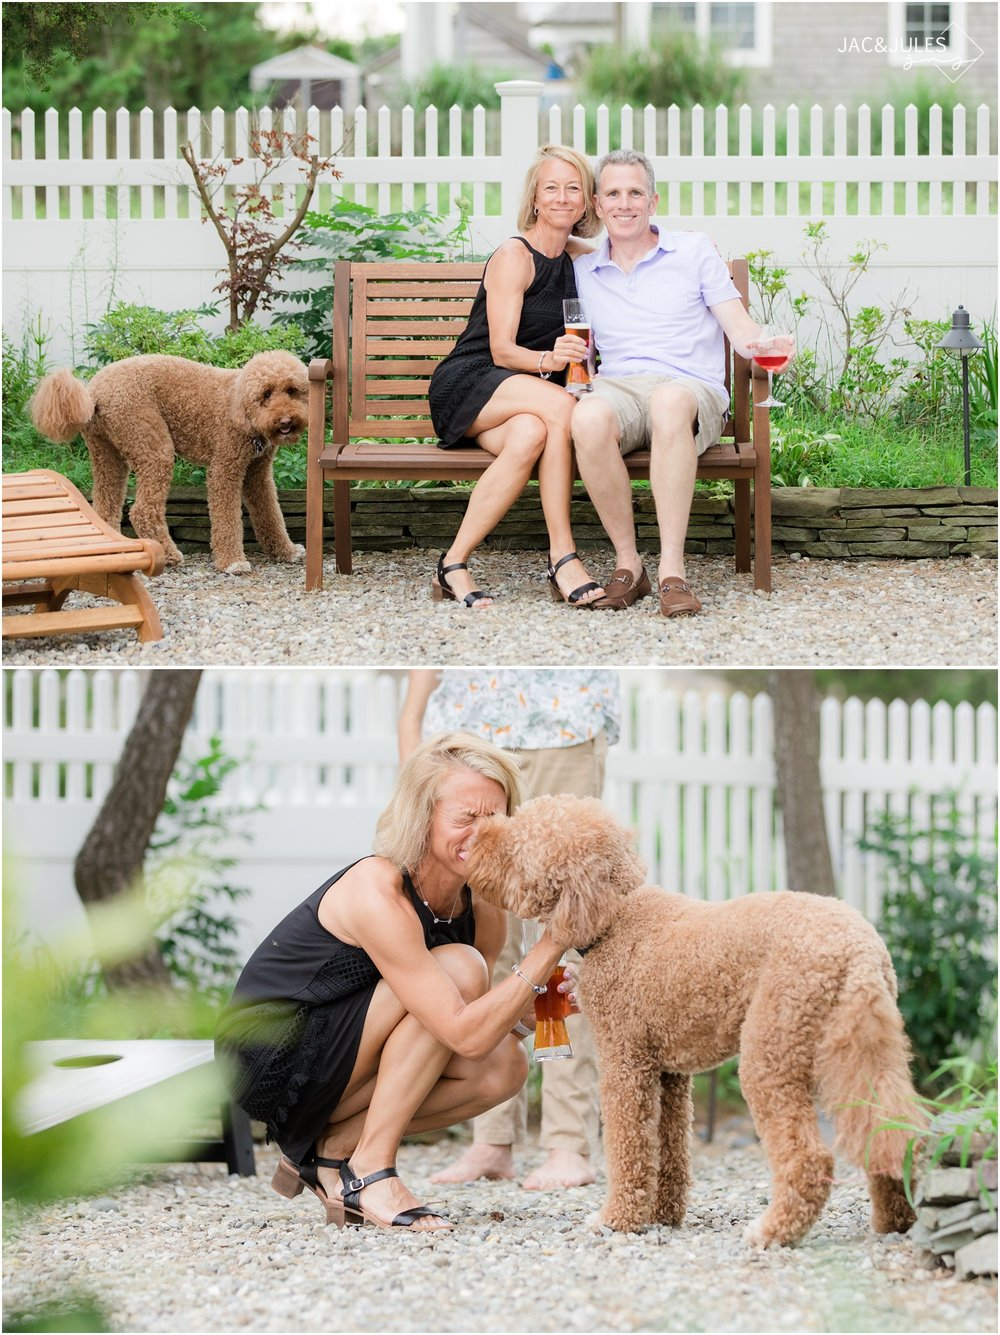 photos of couple with their dog at a family reunion at home in Mantoloking, NJ.